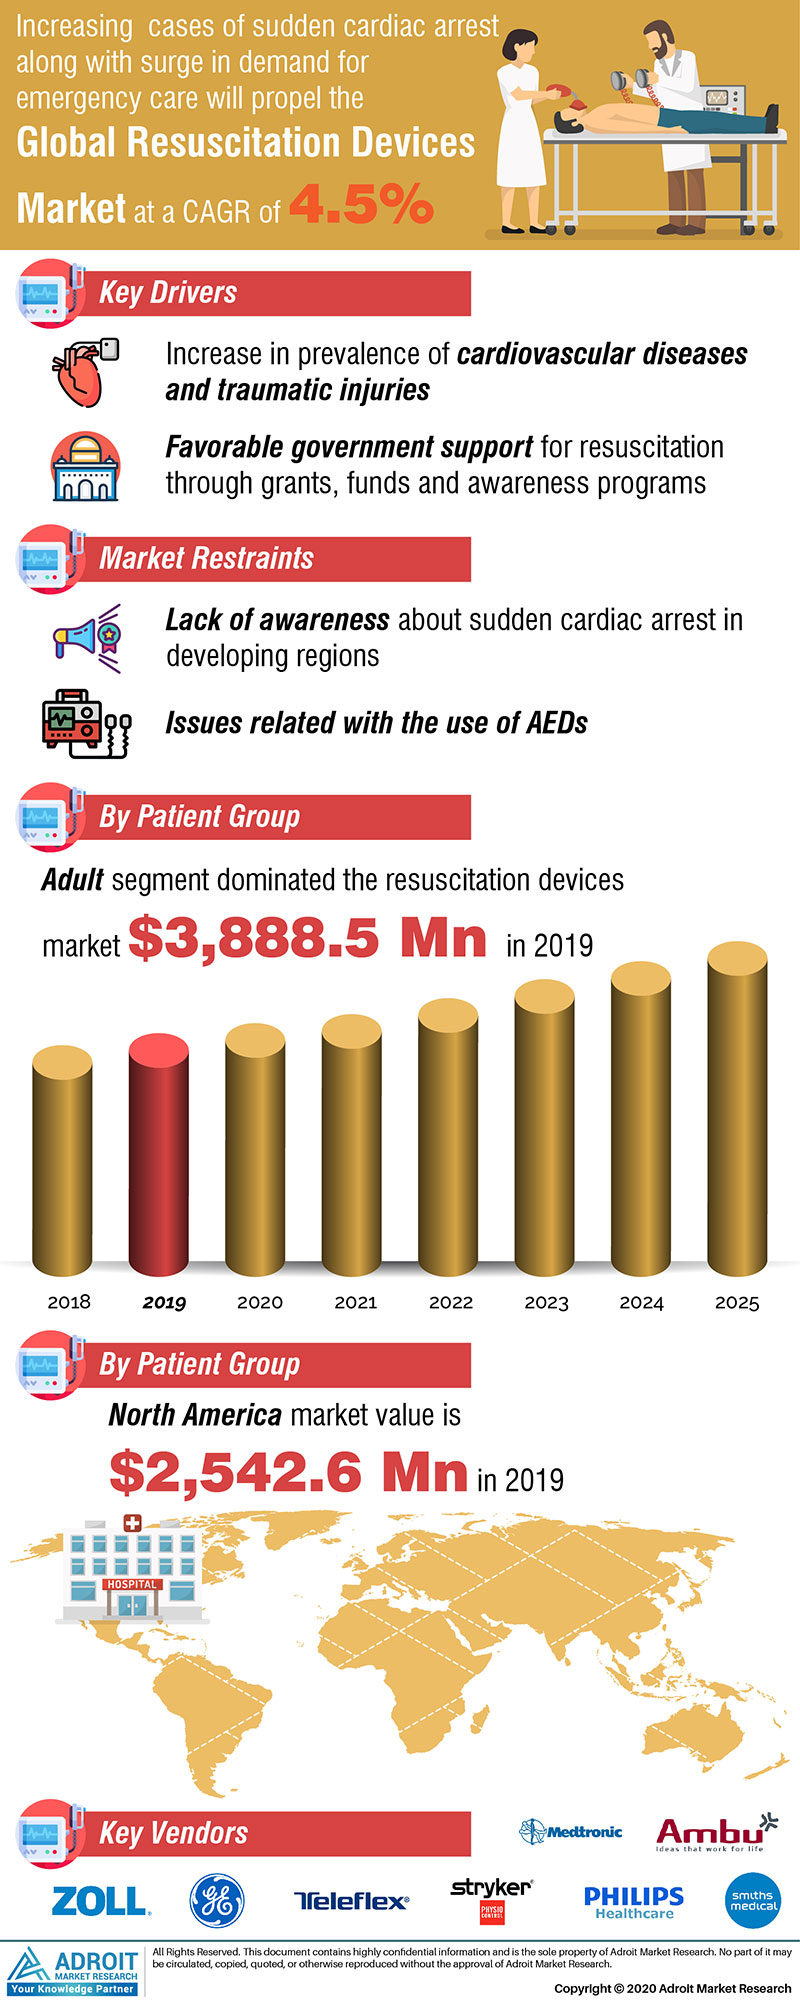 Resuscitation Devices Market Size to reach $7.8 billion by 2025